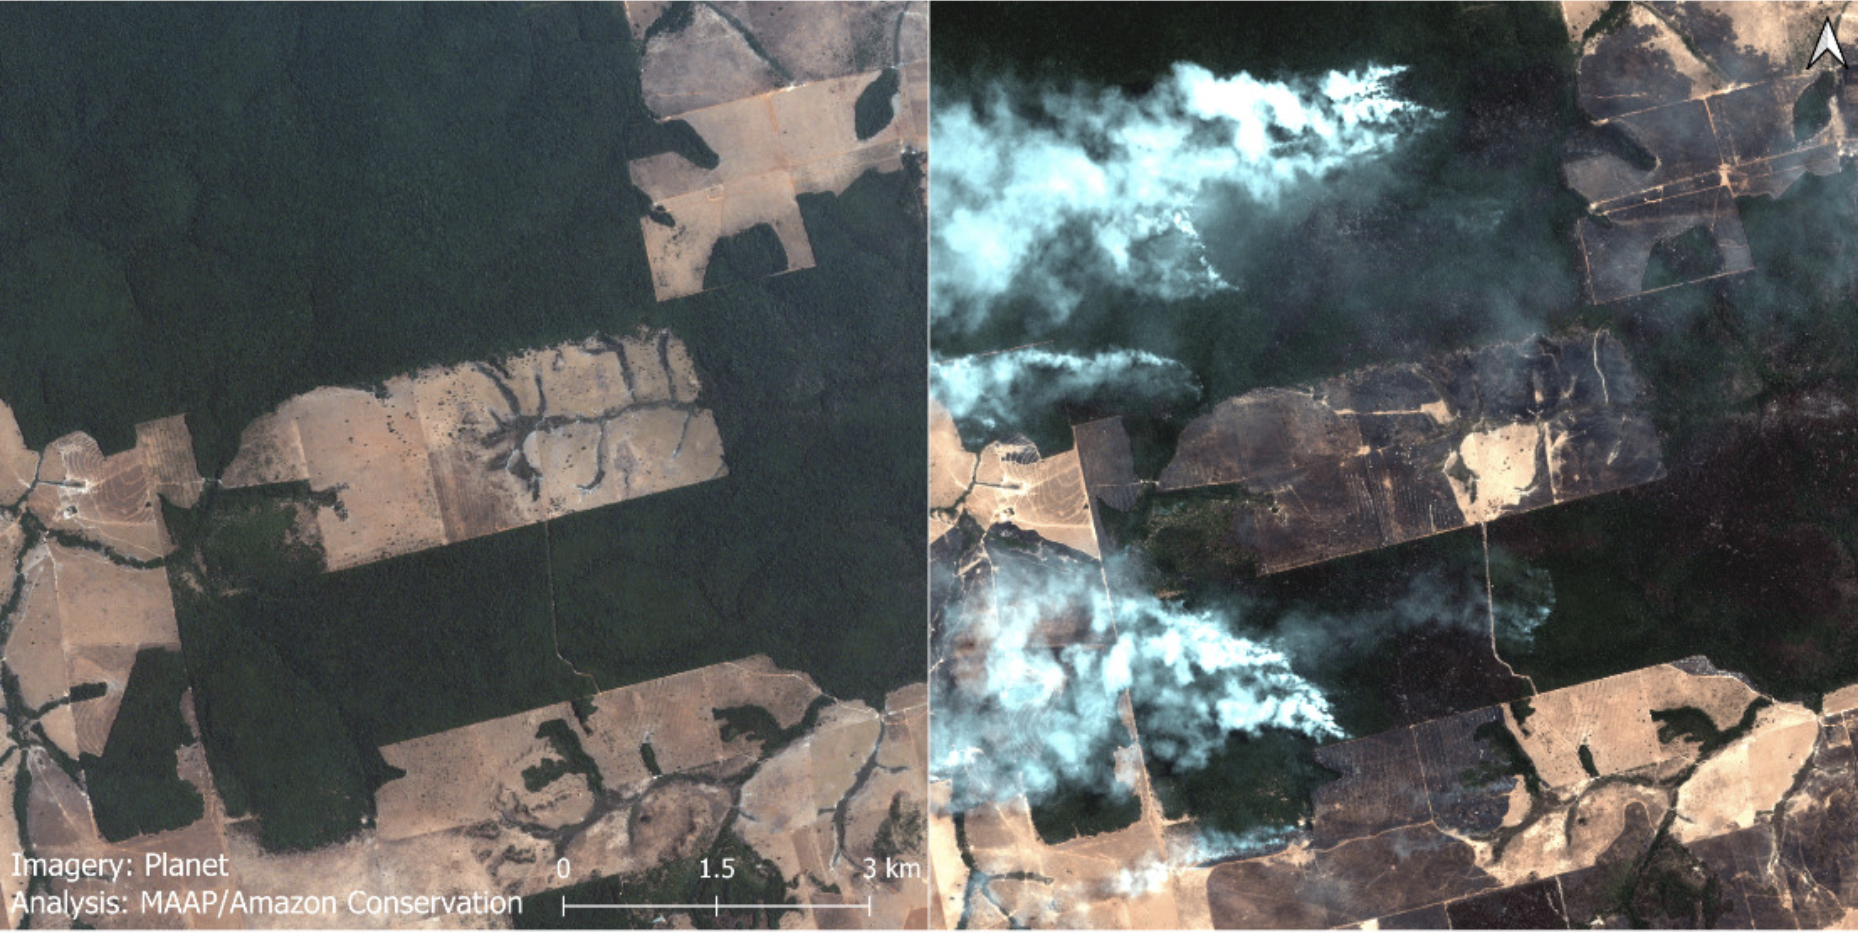 High-resolution satellite images (courtesy of Planet) show the before (left panel) and after (right panel) of a recent major fire in the Brazilian Amazon (Mato Grosso state) showing the surrounding matrix of forest fires, recently deforested area fires, and cropland fires. Photo courtesy of Planet/MAAP.